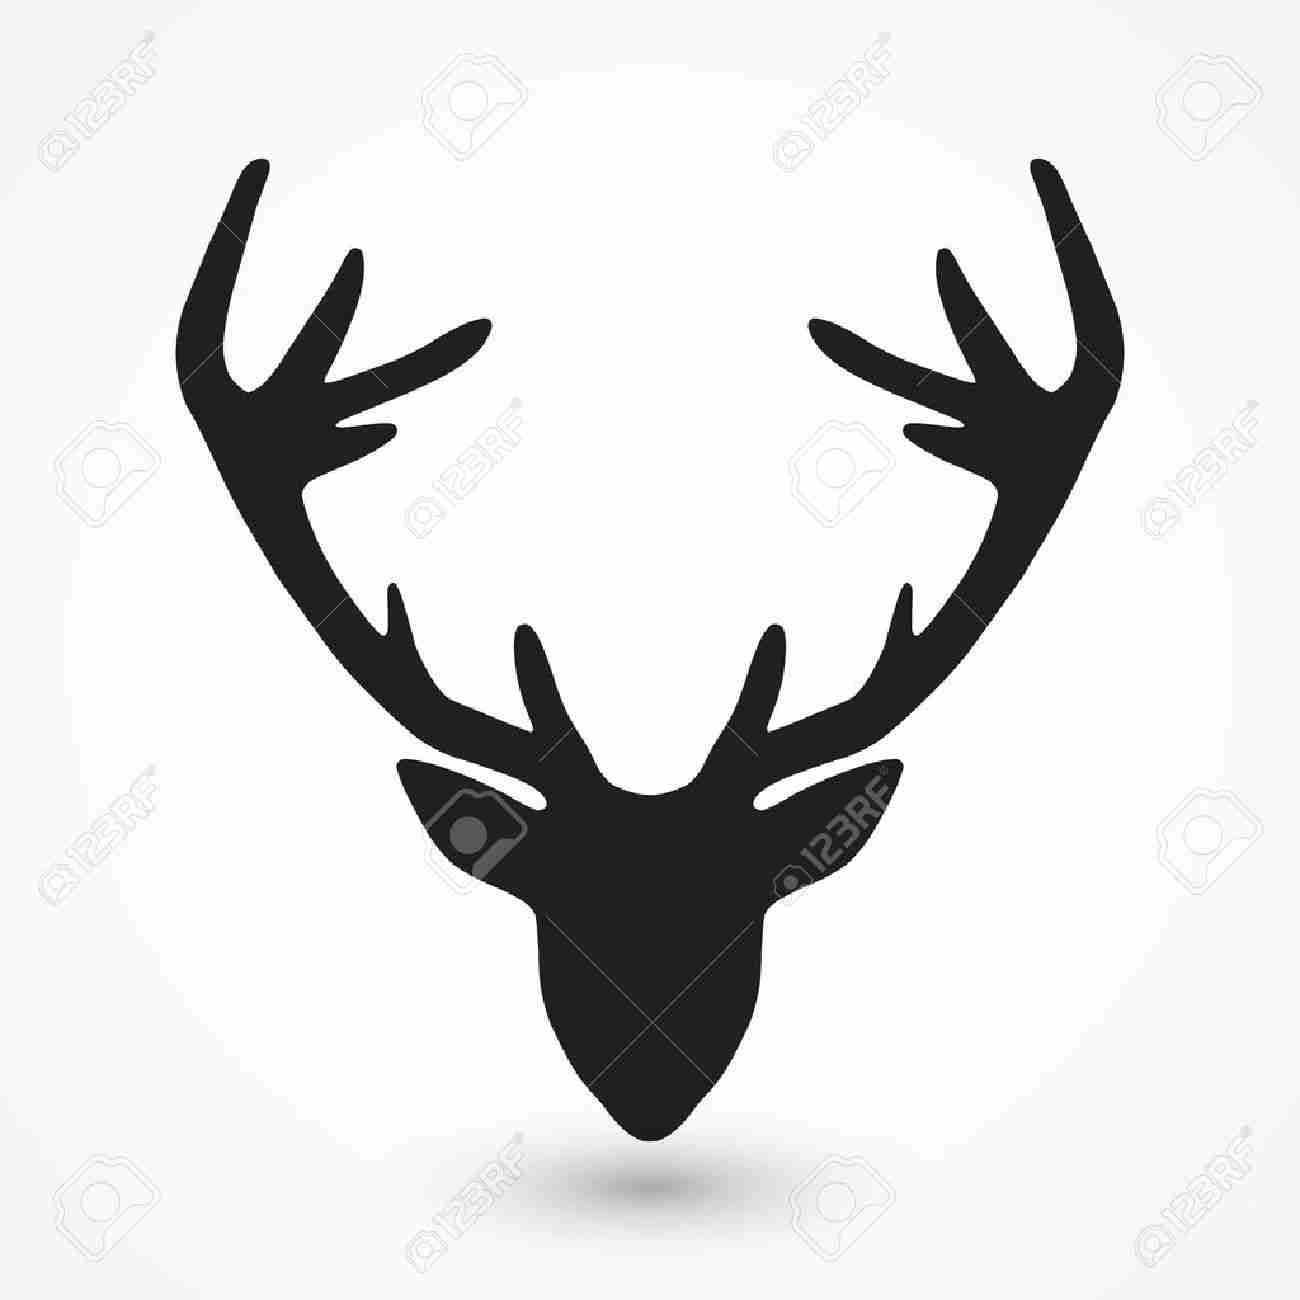 1300x1300 Royalty Free Deer Skull With Antlers Silhouette 178446326 Stock